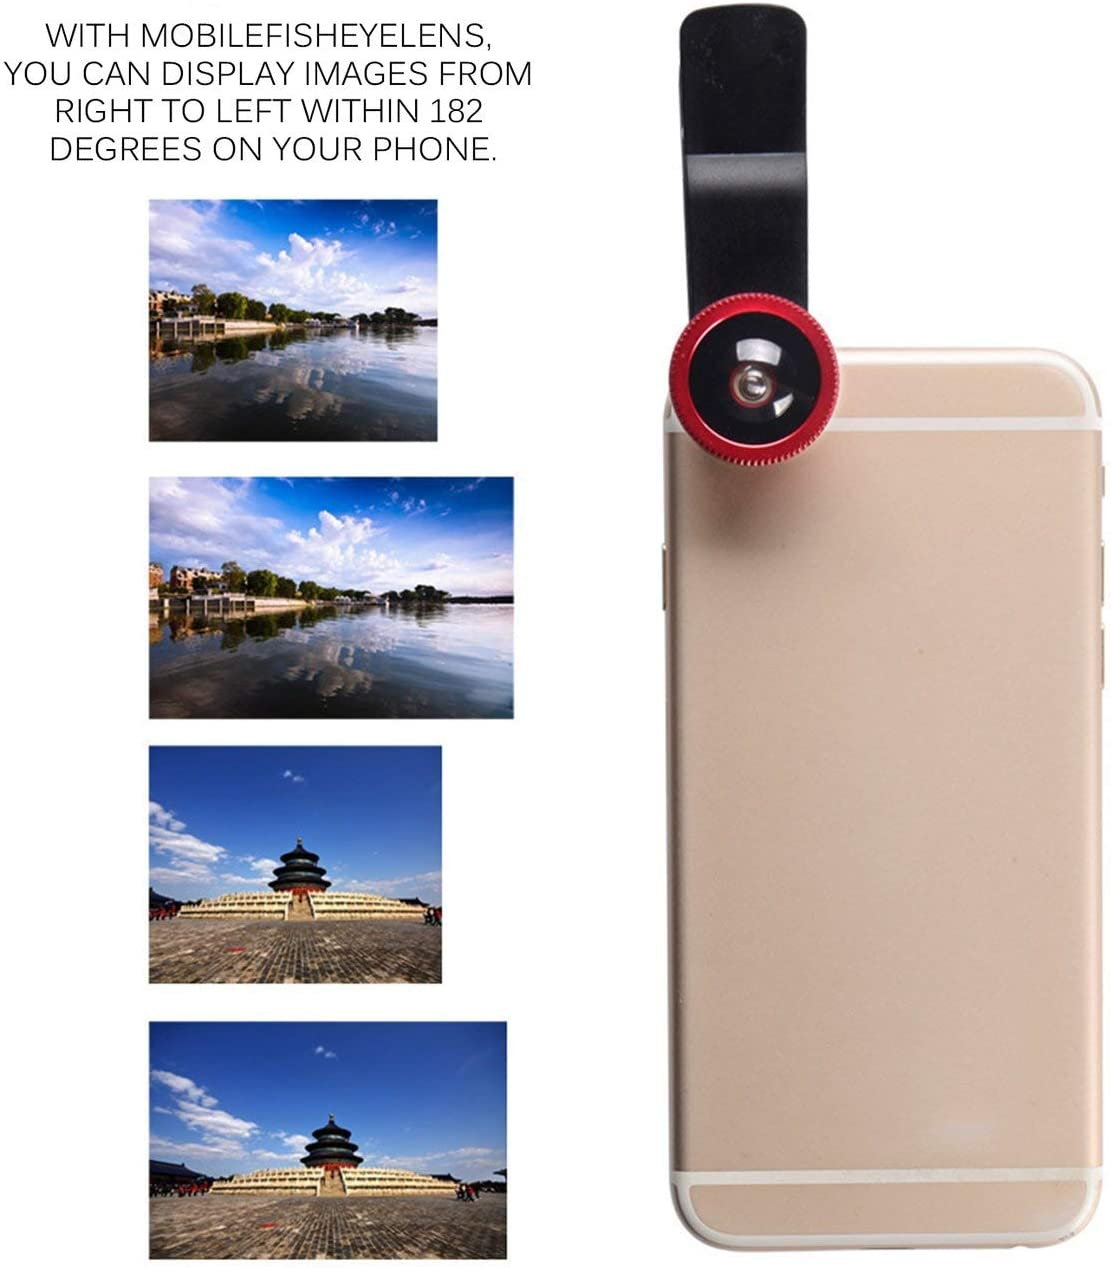 Tree-on-Life Mobile Phone Camera Lens Kit Fish Eye Lens 2 in1 Macro Lens/& Super Wide Angle Lens with Black Universal Phone Clip